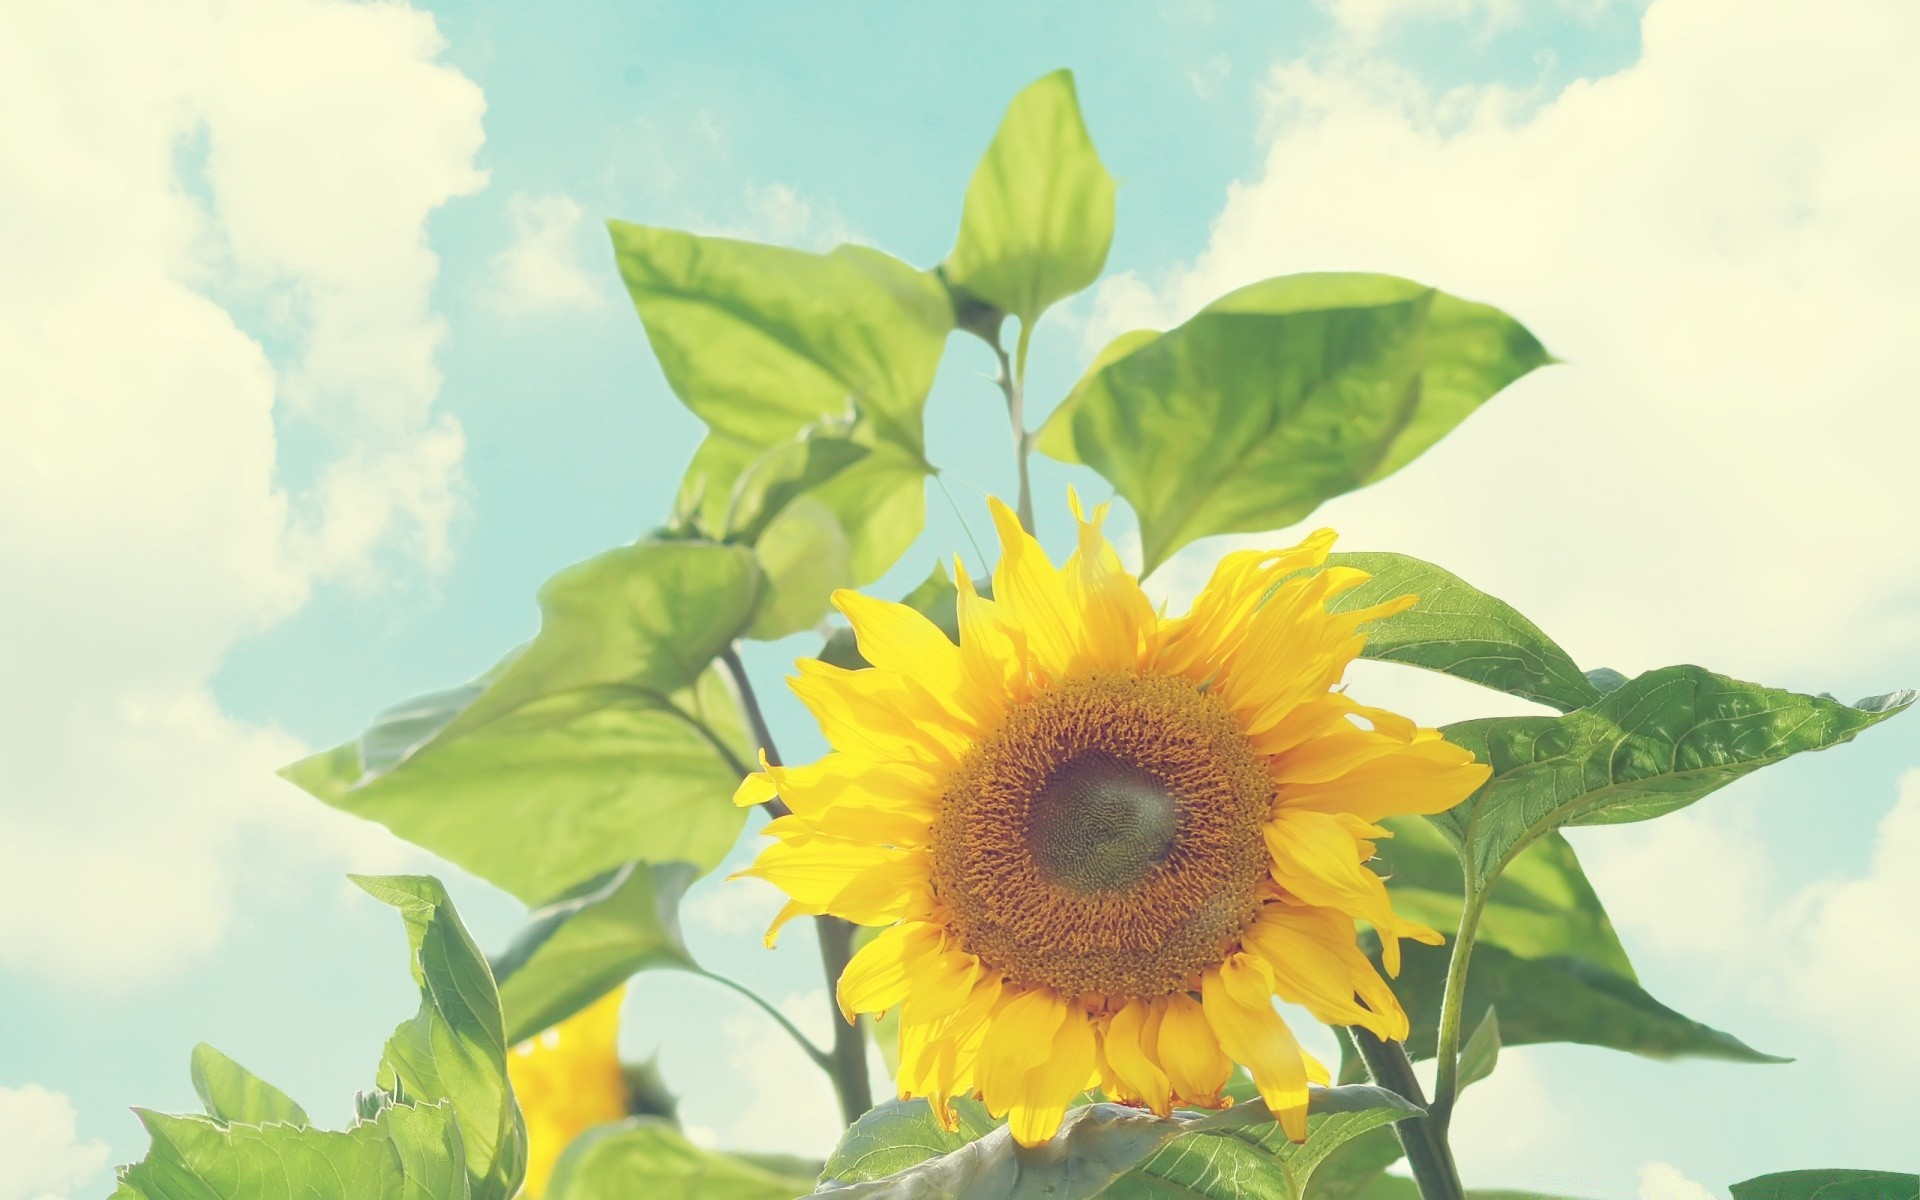 flowers nature flora leaf summer growth flower bright fair weather sun outdoors color sunflower